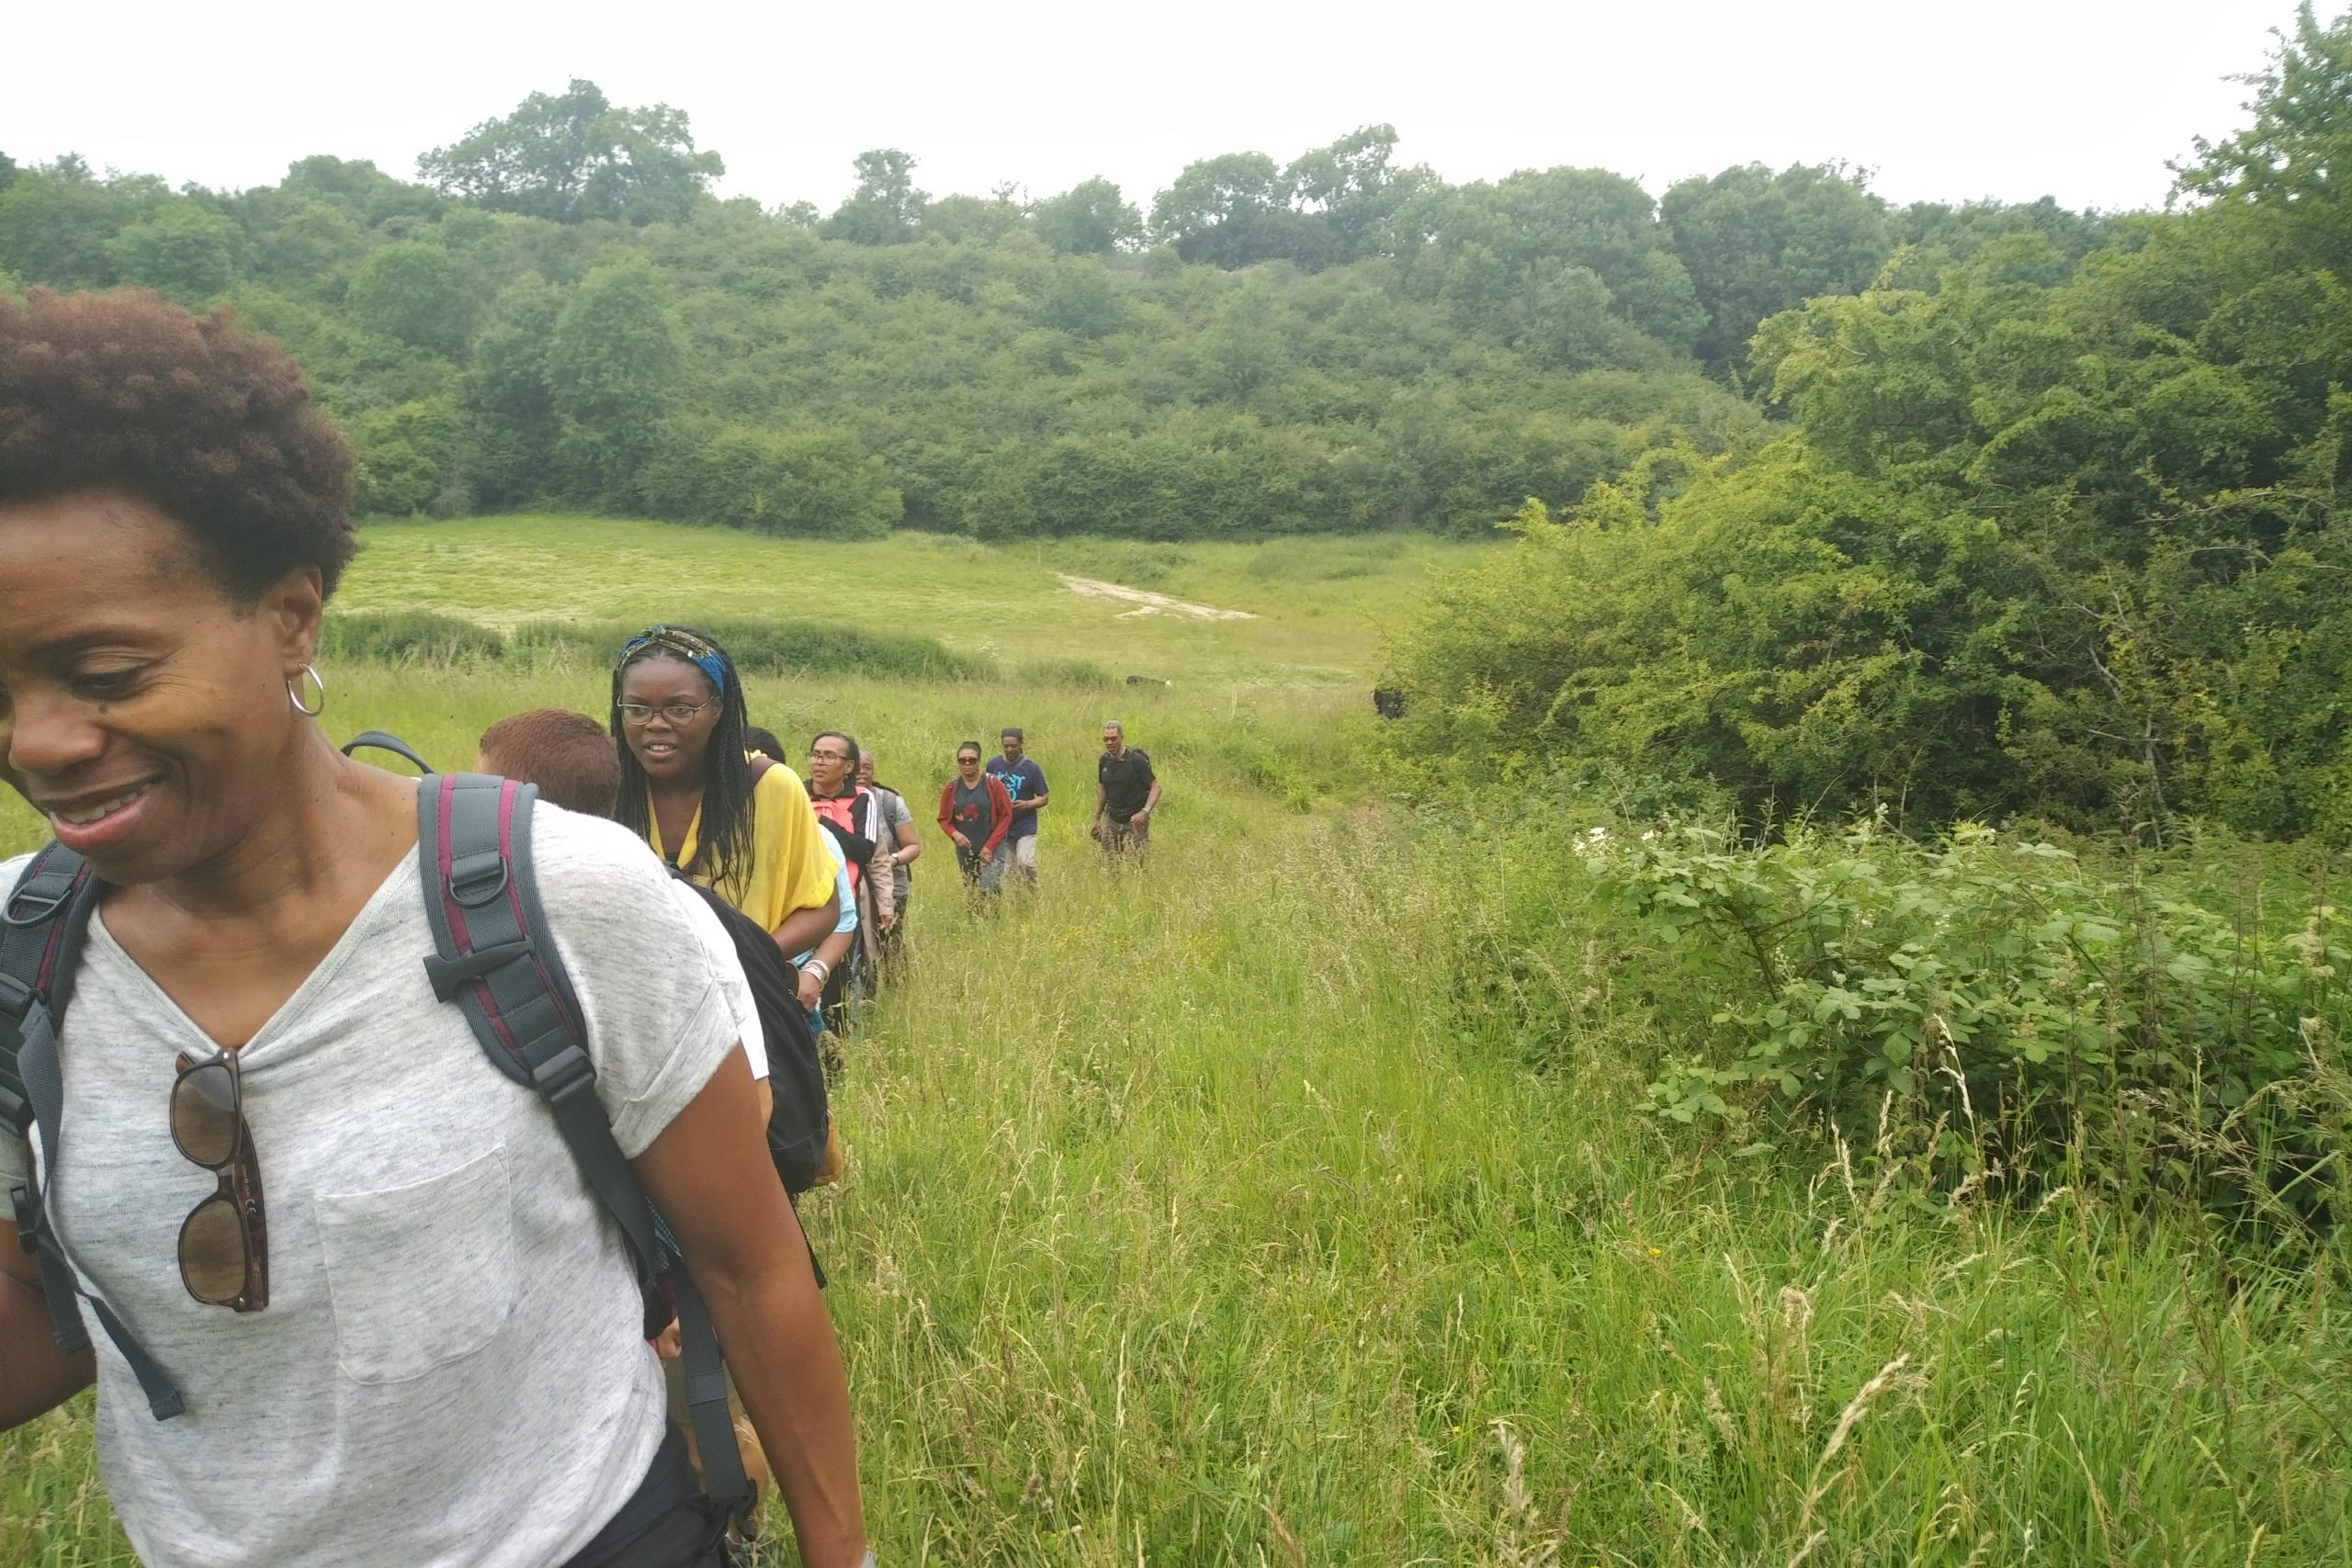 A line of people hiking through long grass surrounded by bushes.